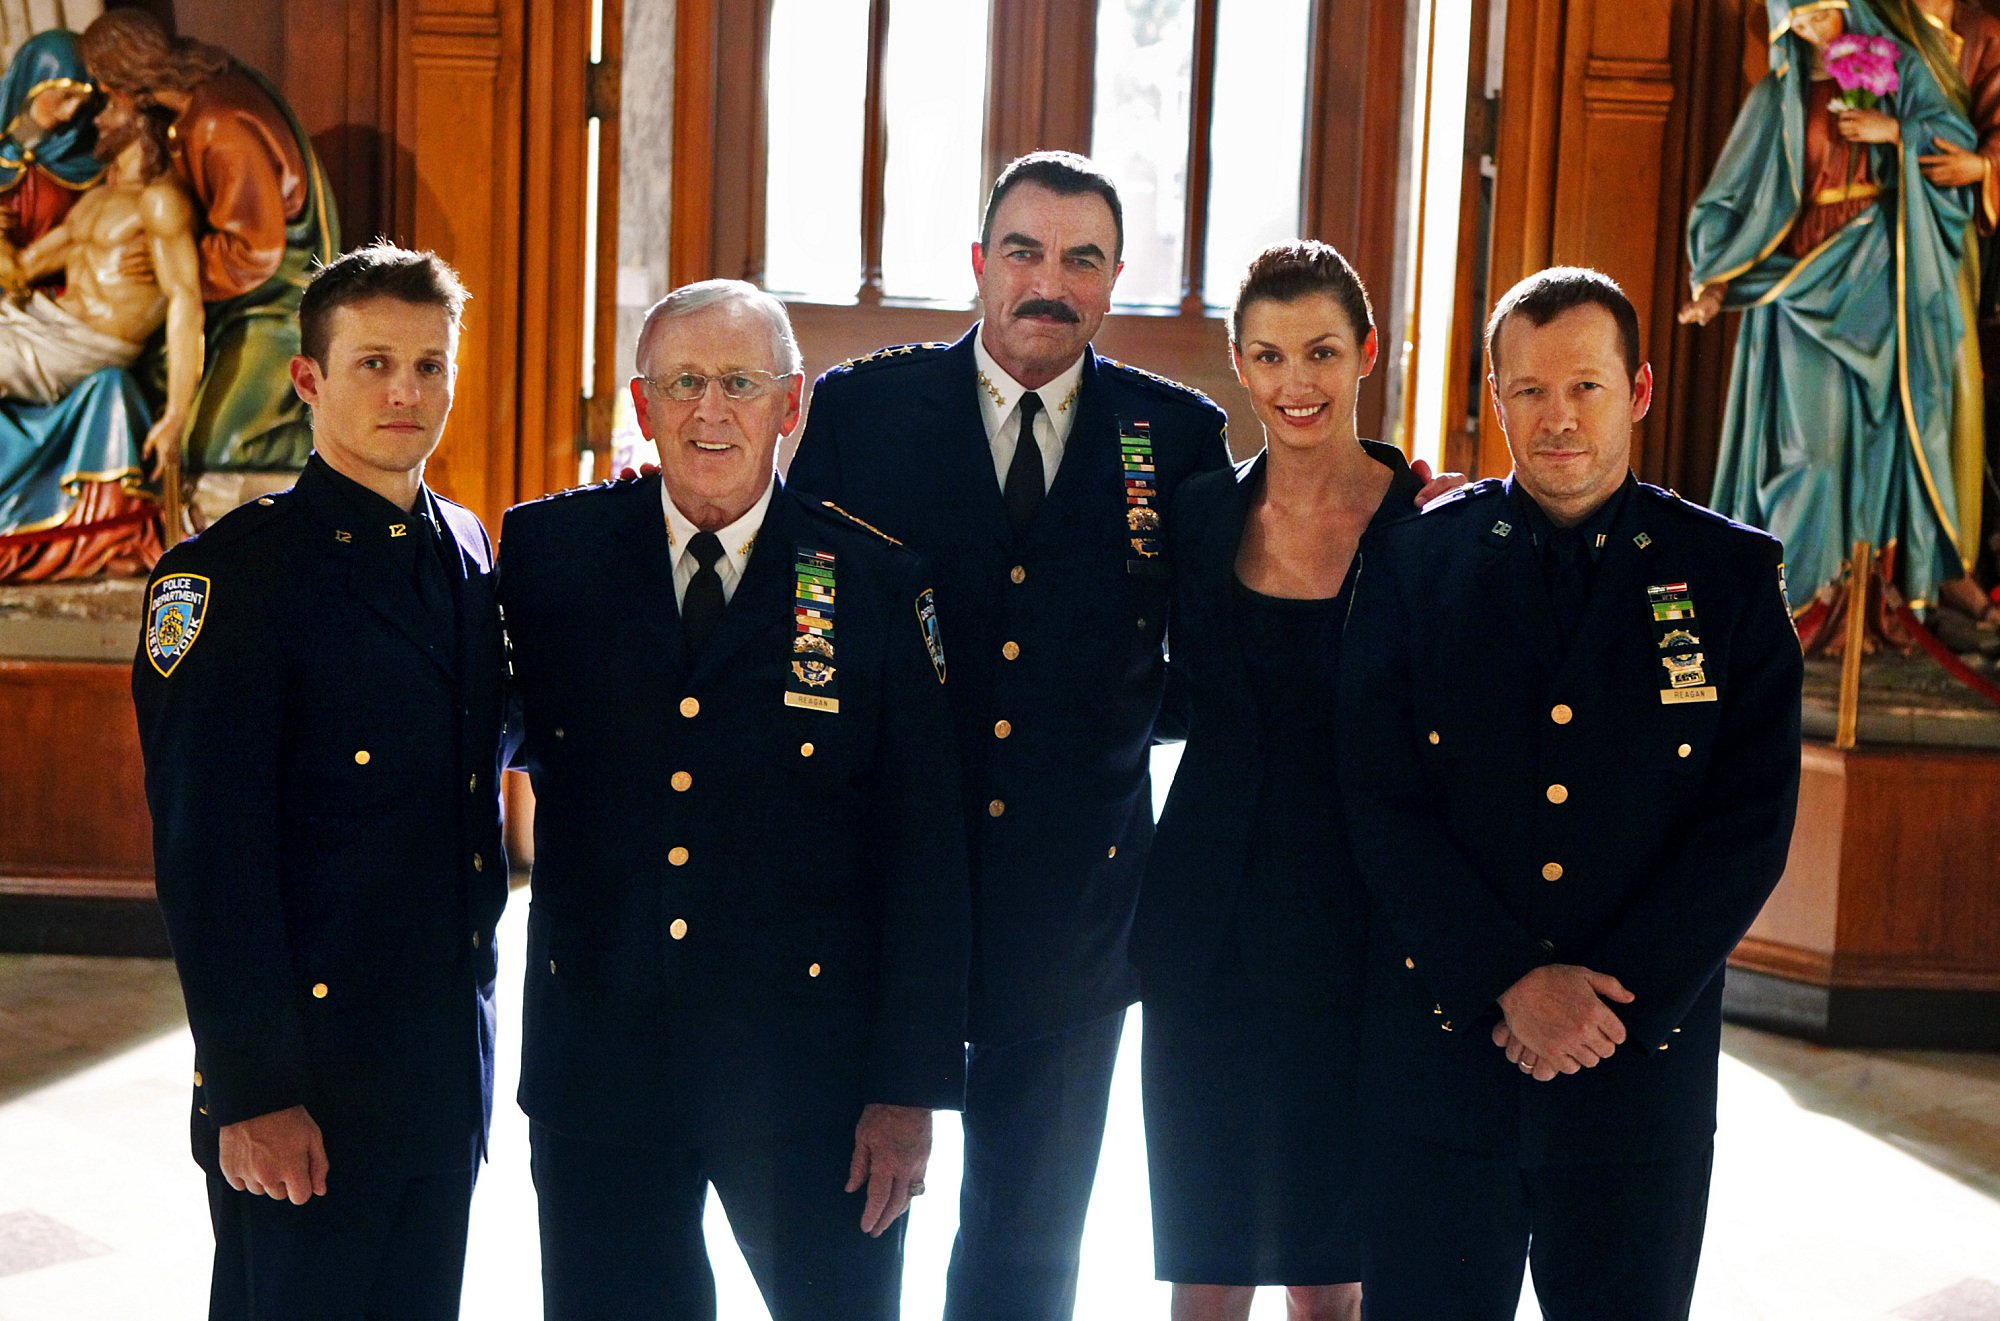 """The cast of """"Blue Bloods"""" pictured in their uniforms for an episode called """"Officer Down."""" 